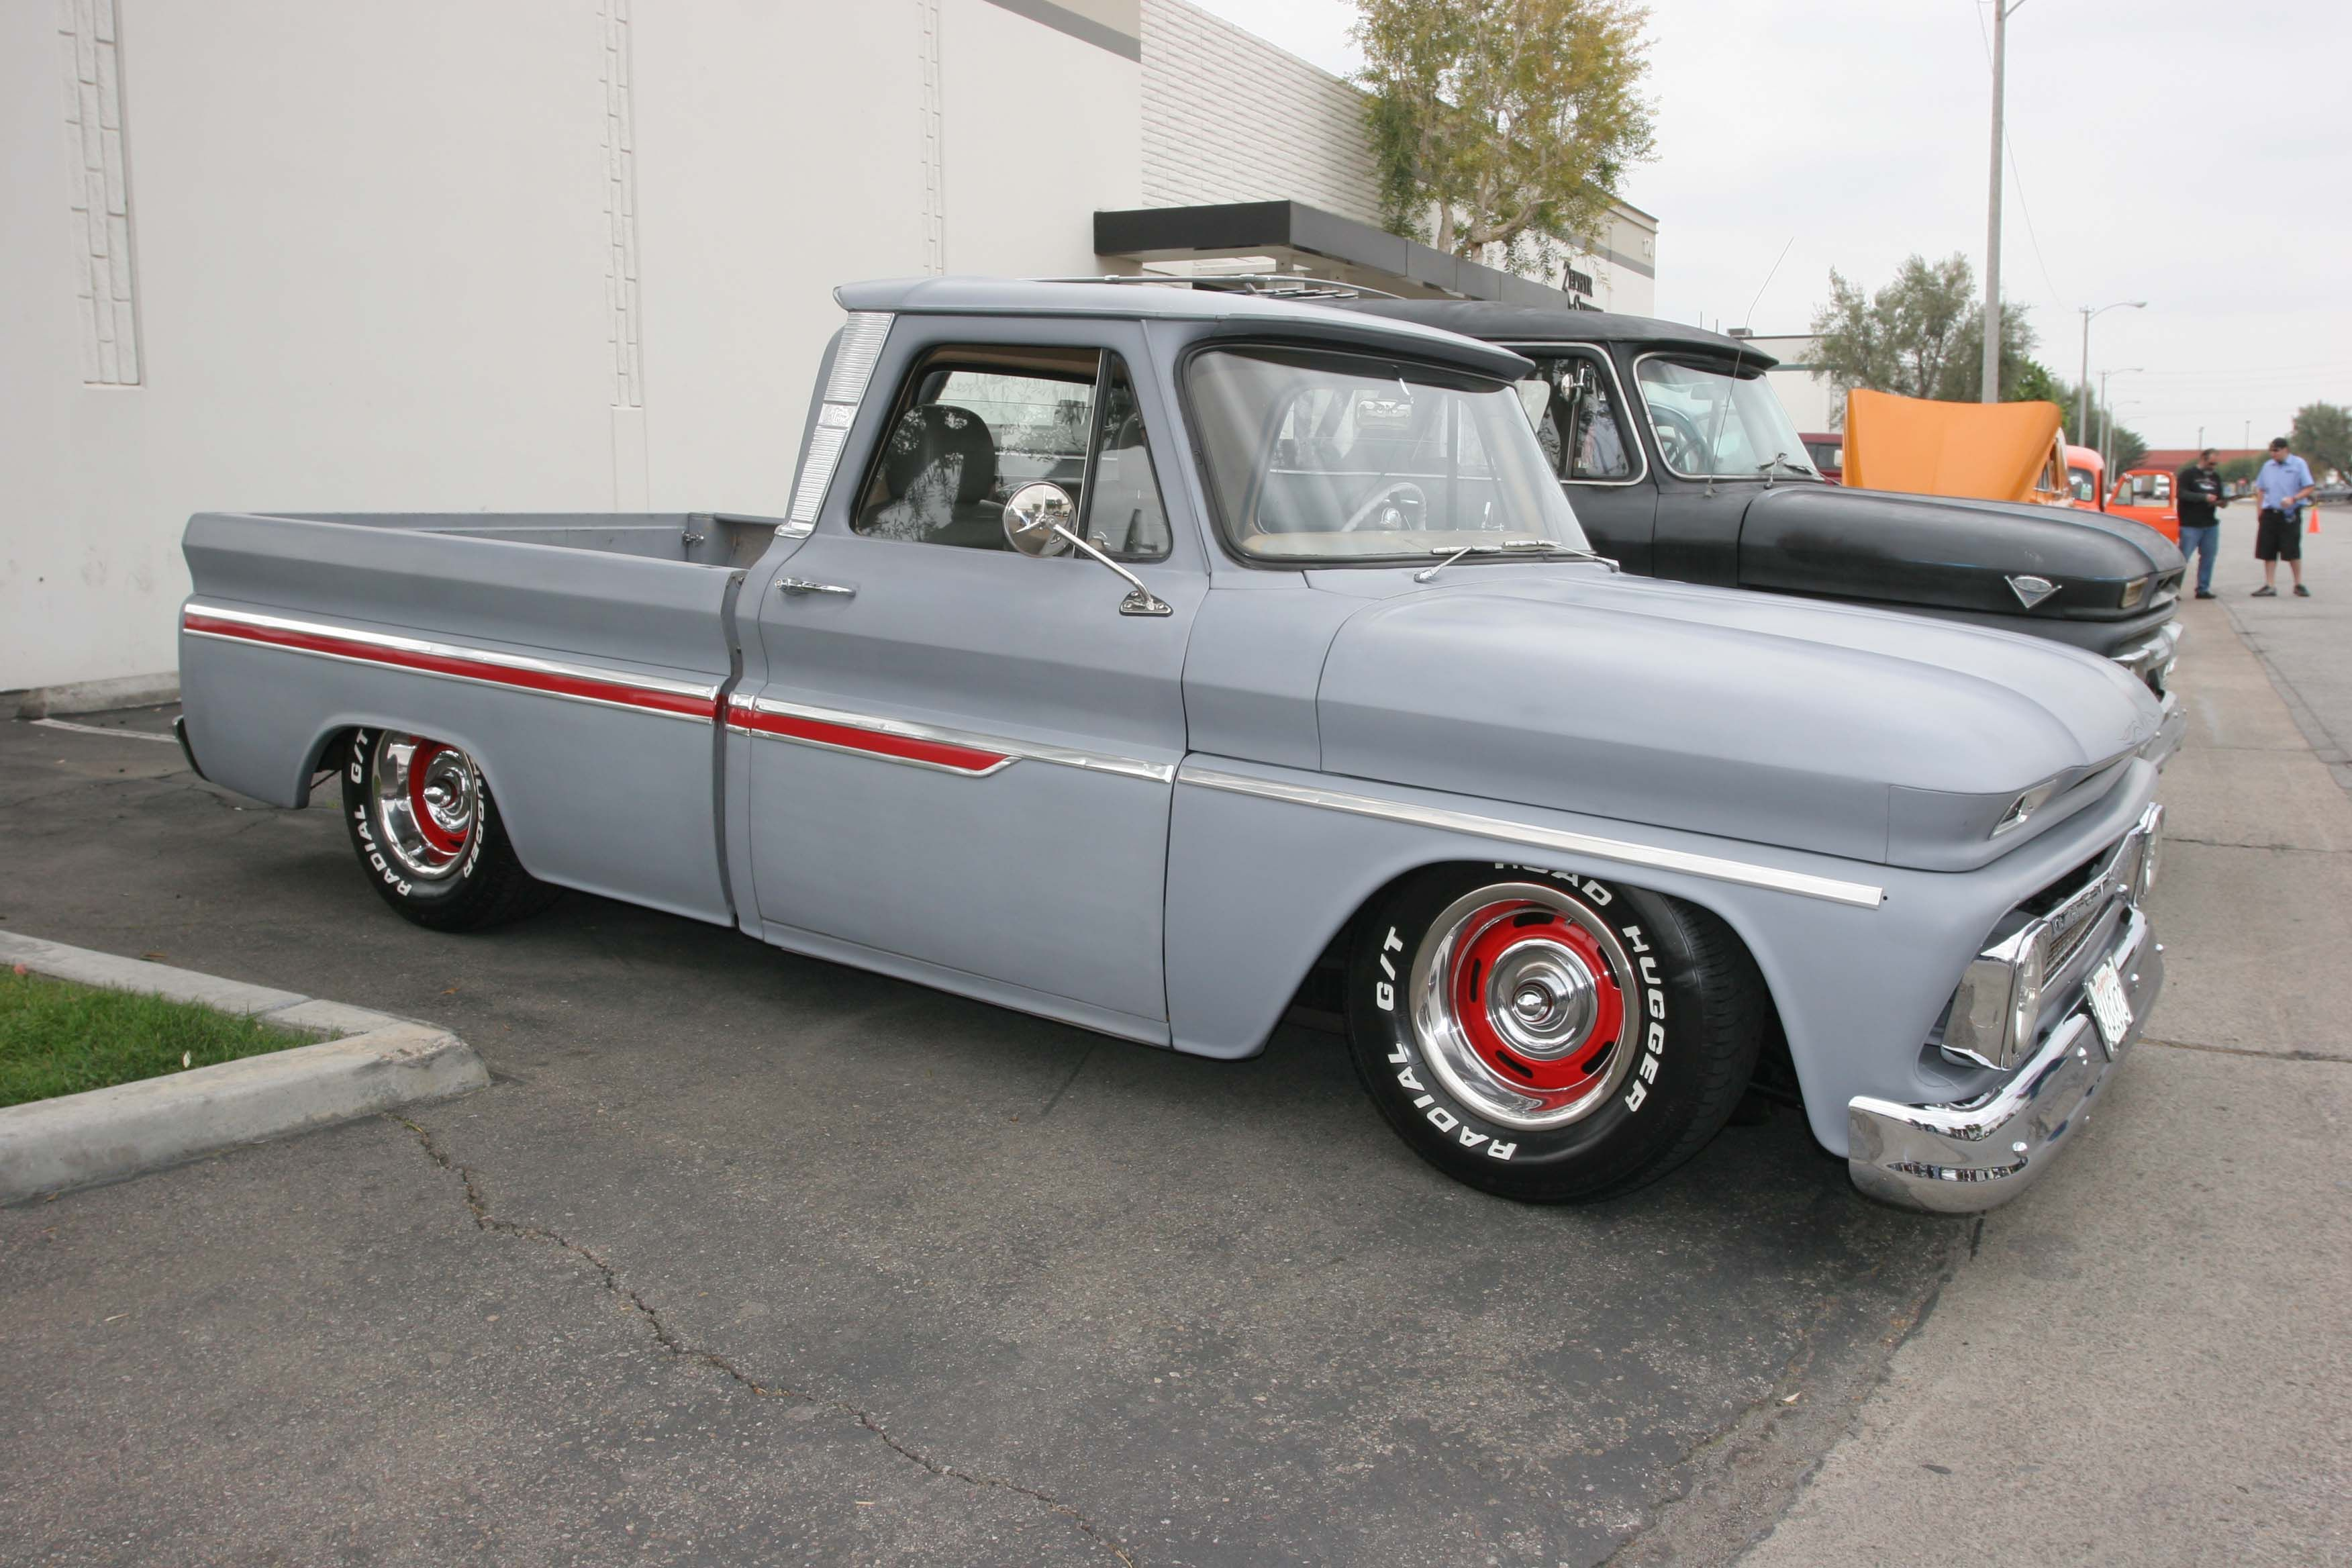 Old trucks for sale 1963 chevy pickup classic antique truck for sale price 8500_20365980 christophers favorites pinterest antique trucks chevy